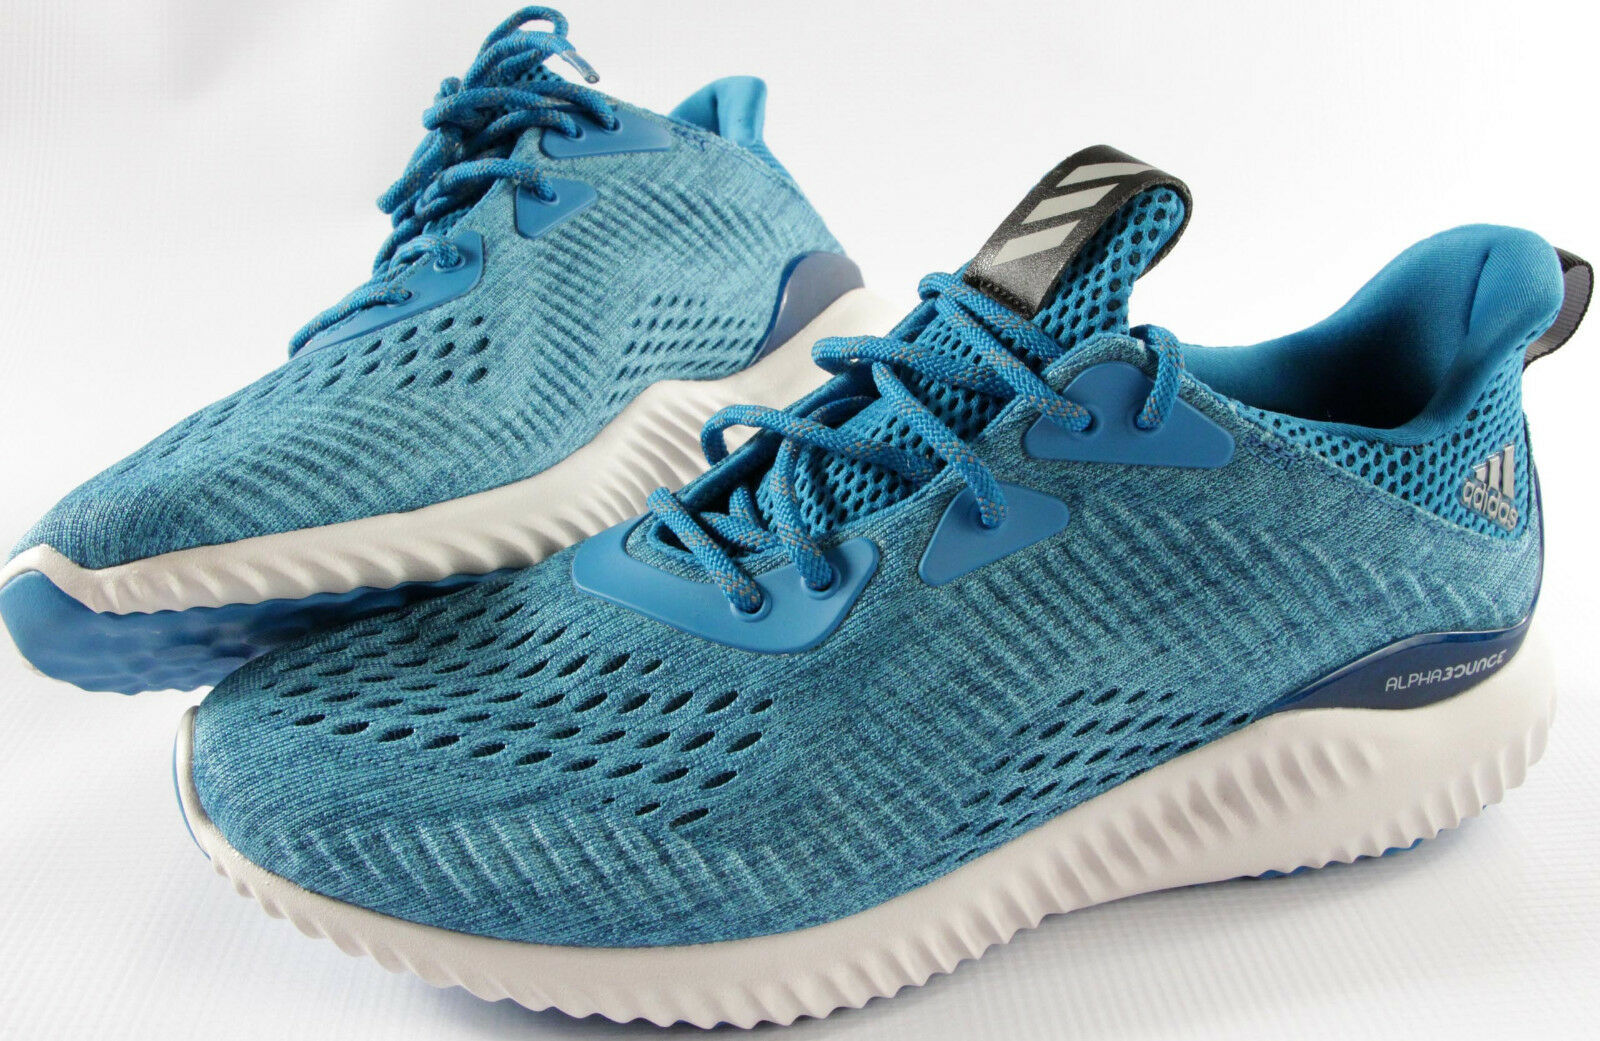 ADIDAS AlphaBounce AlphaBounce AlphaBounce EM shoes-8.5-NEW-engineered Mesh Performance Running sneakers 0c291c